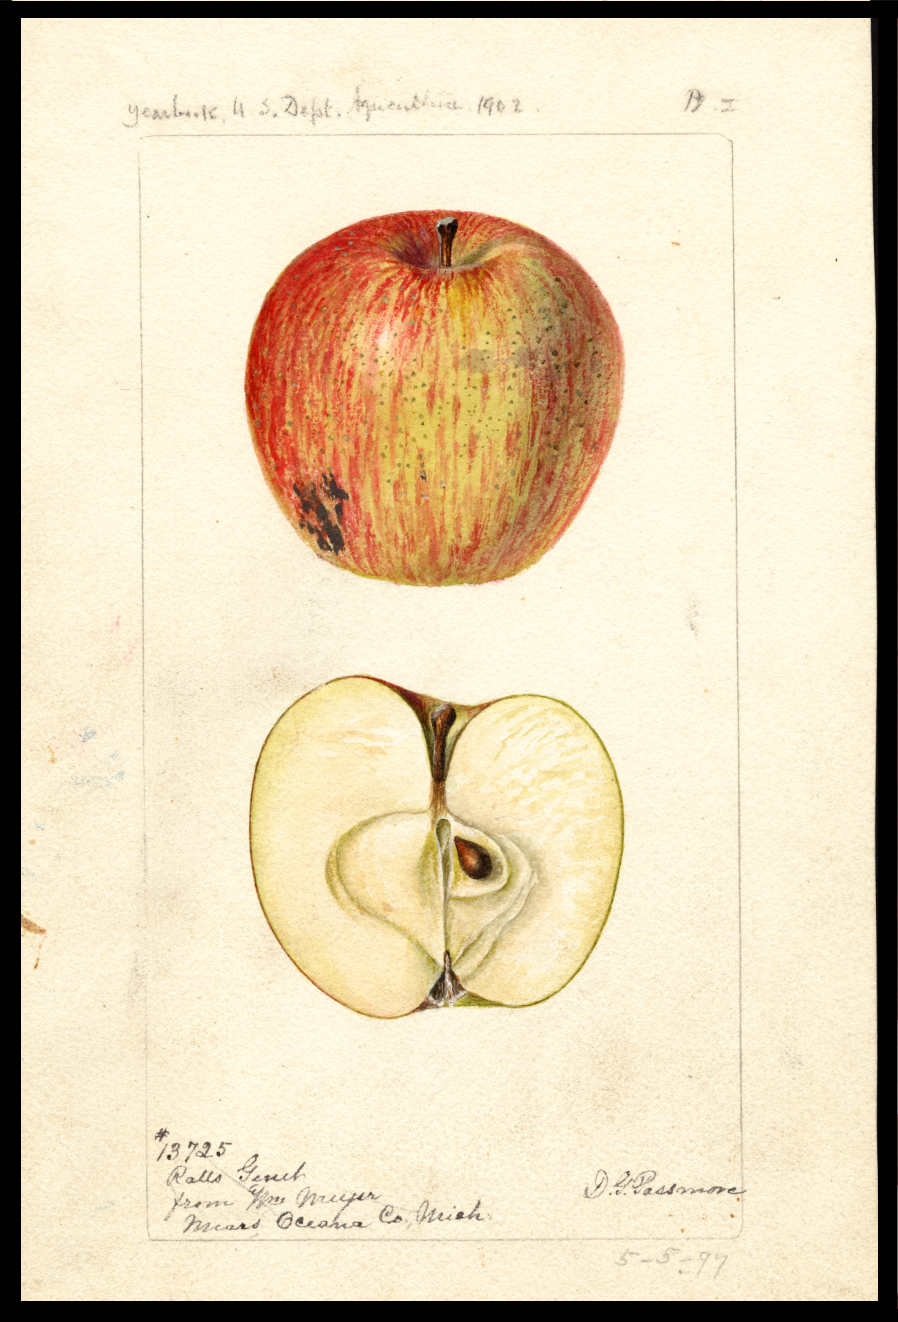 green apple with red blush and stripes